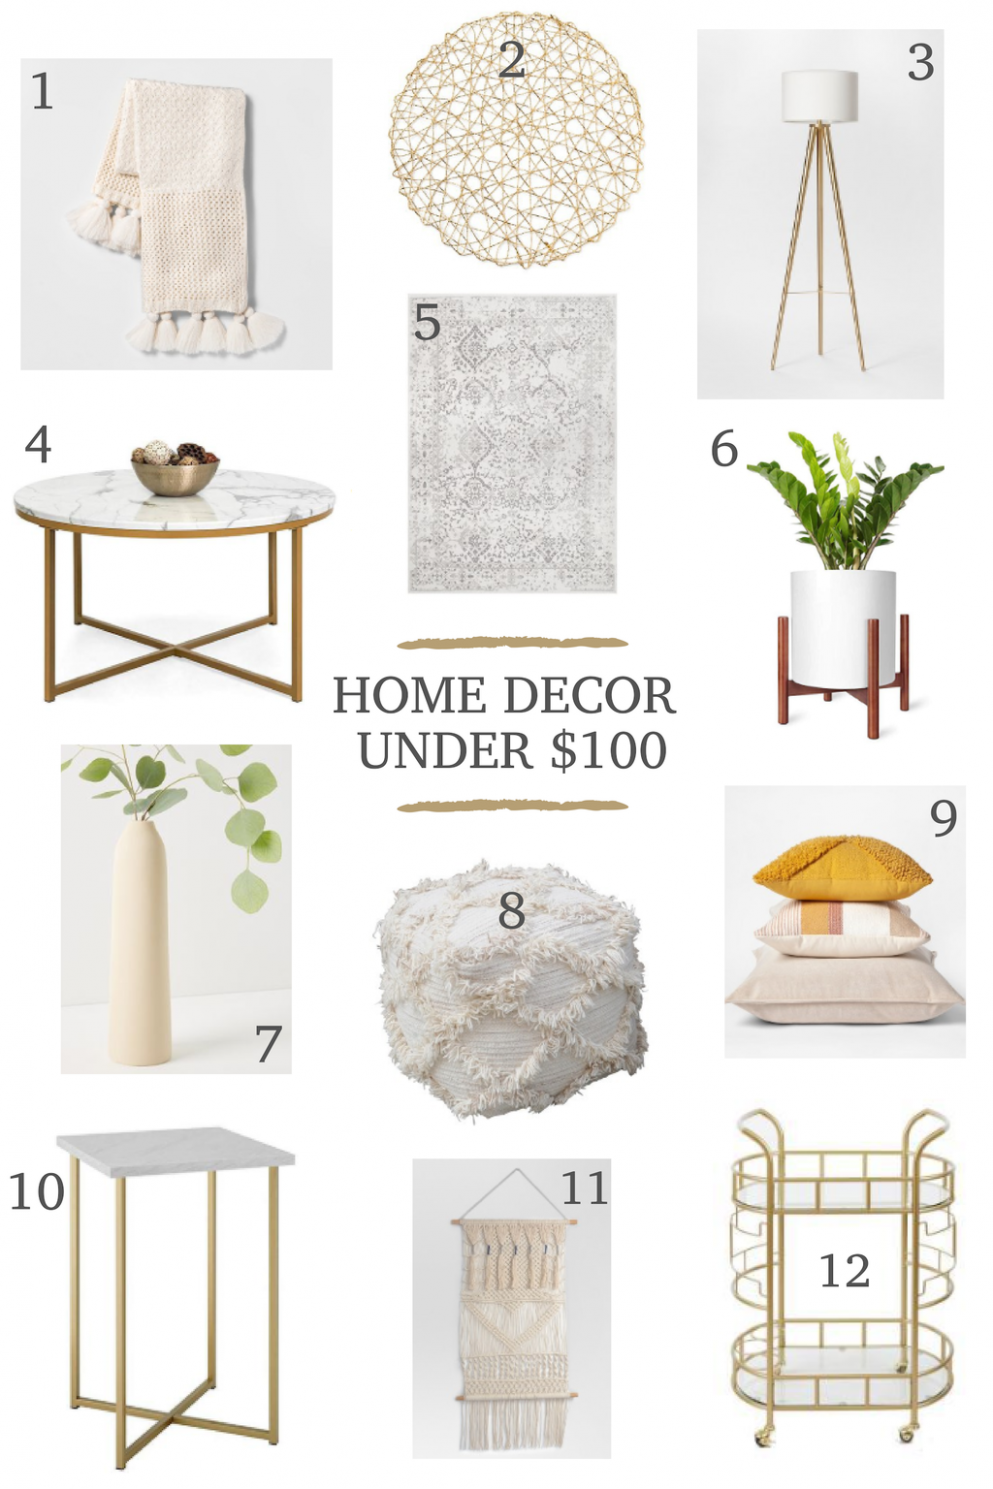 Home decor finds under $12 - home decor under 100